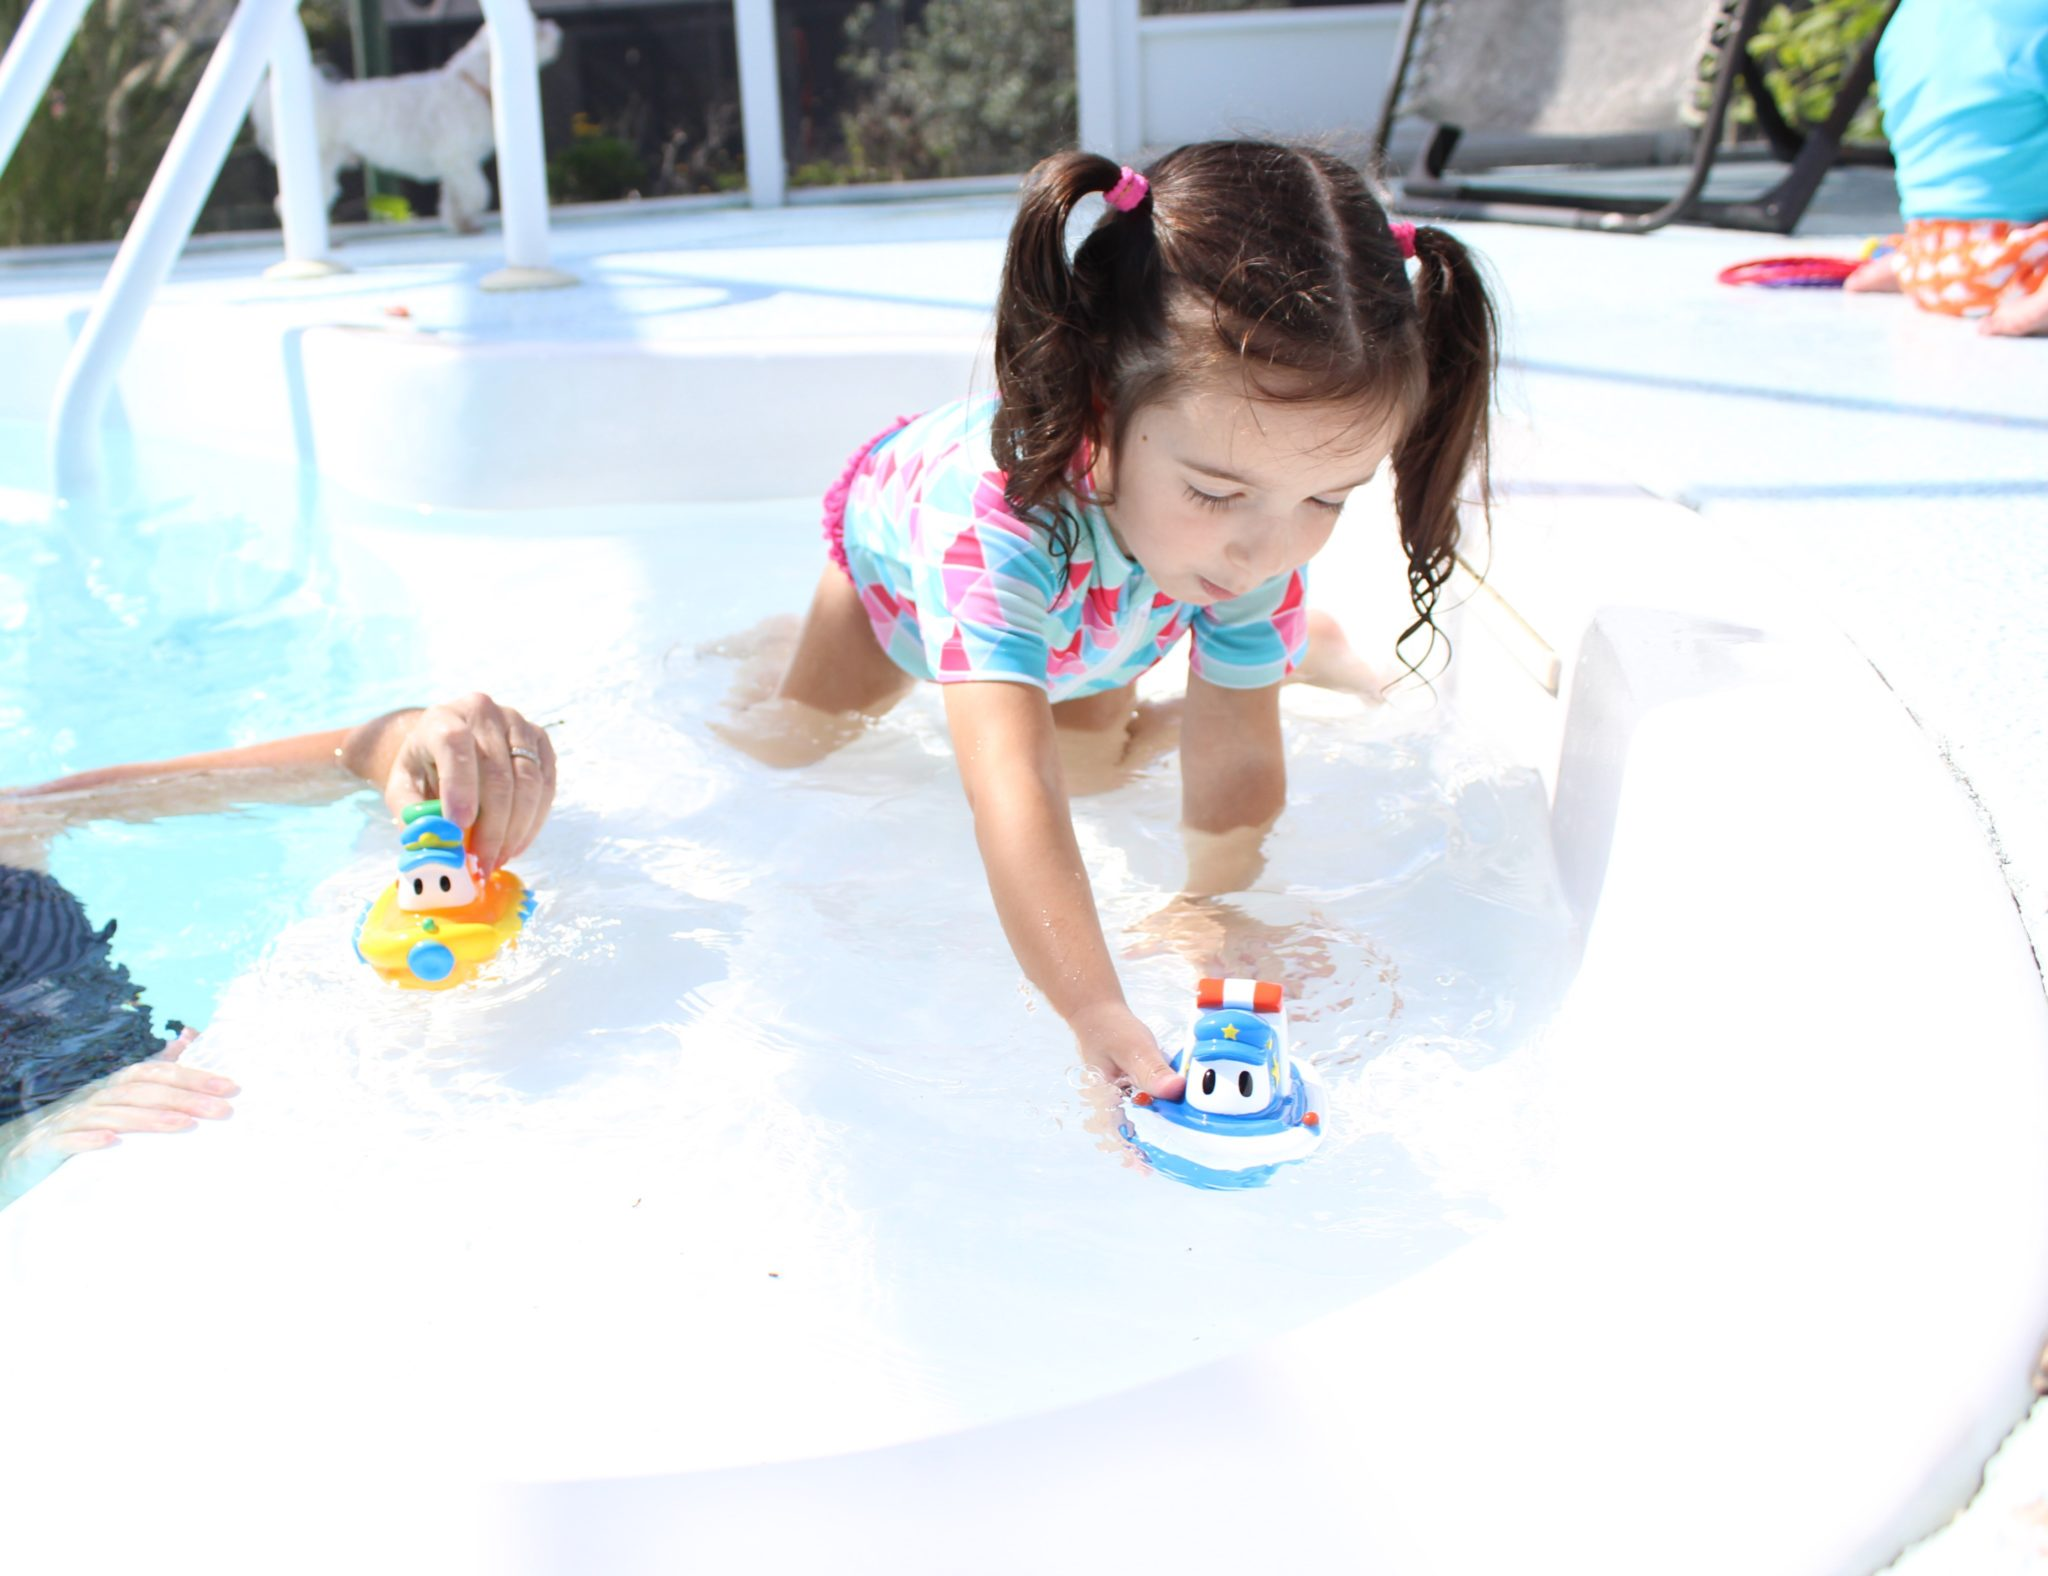 @crazylifewithlittles's cover photo for 'GAINING CONFIDENCE AND LEARNING TO SWIM WITH SWIMWAYS | Crazy Life with Littles'